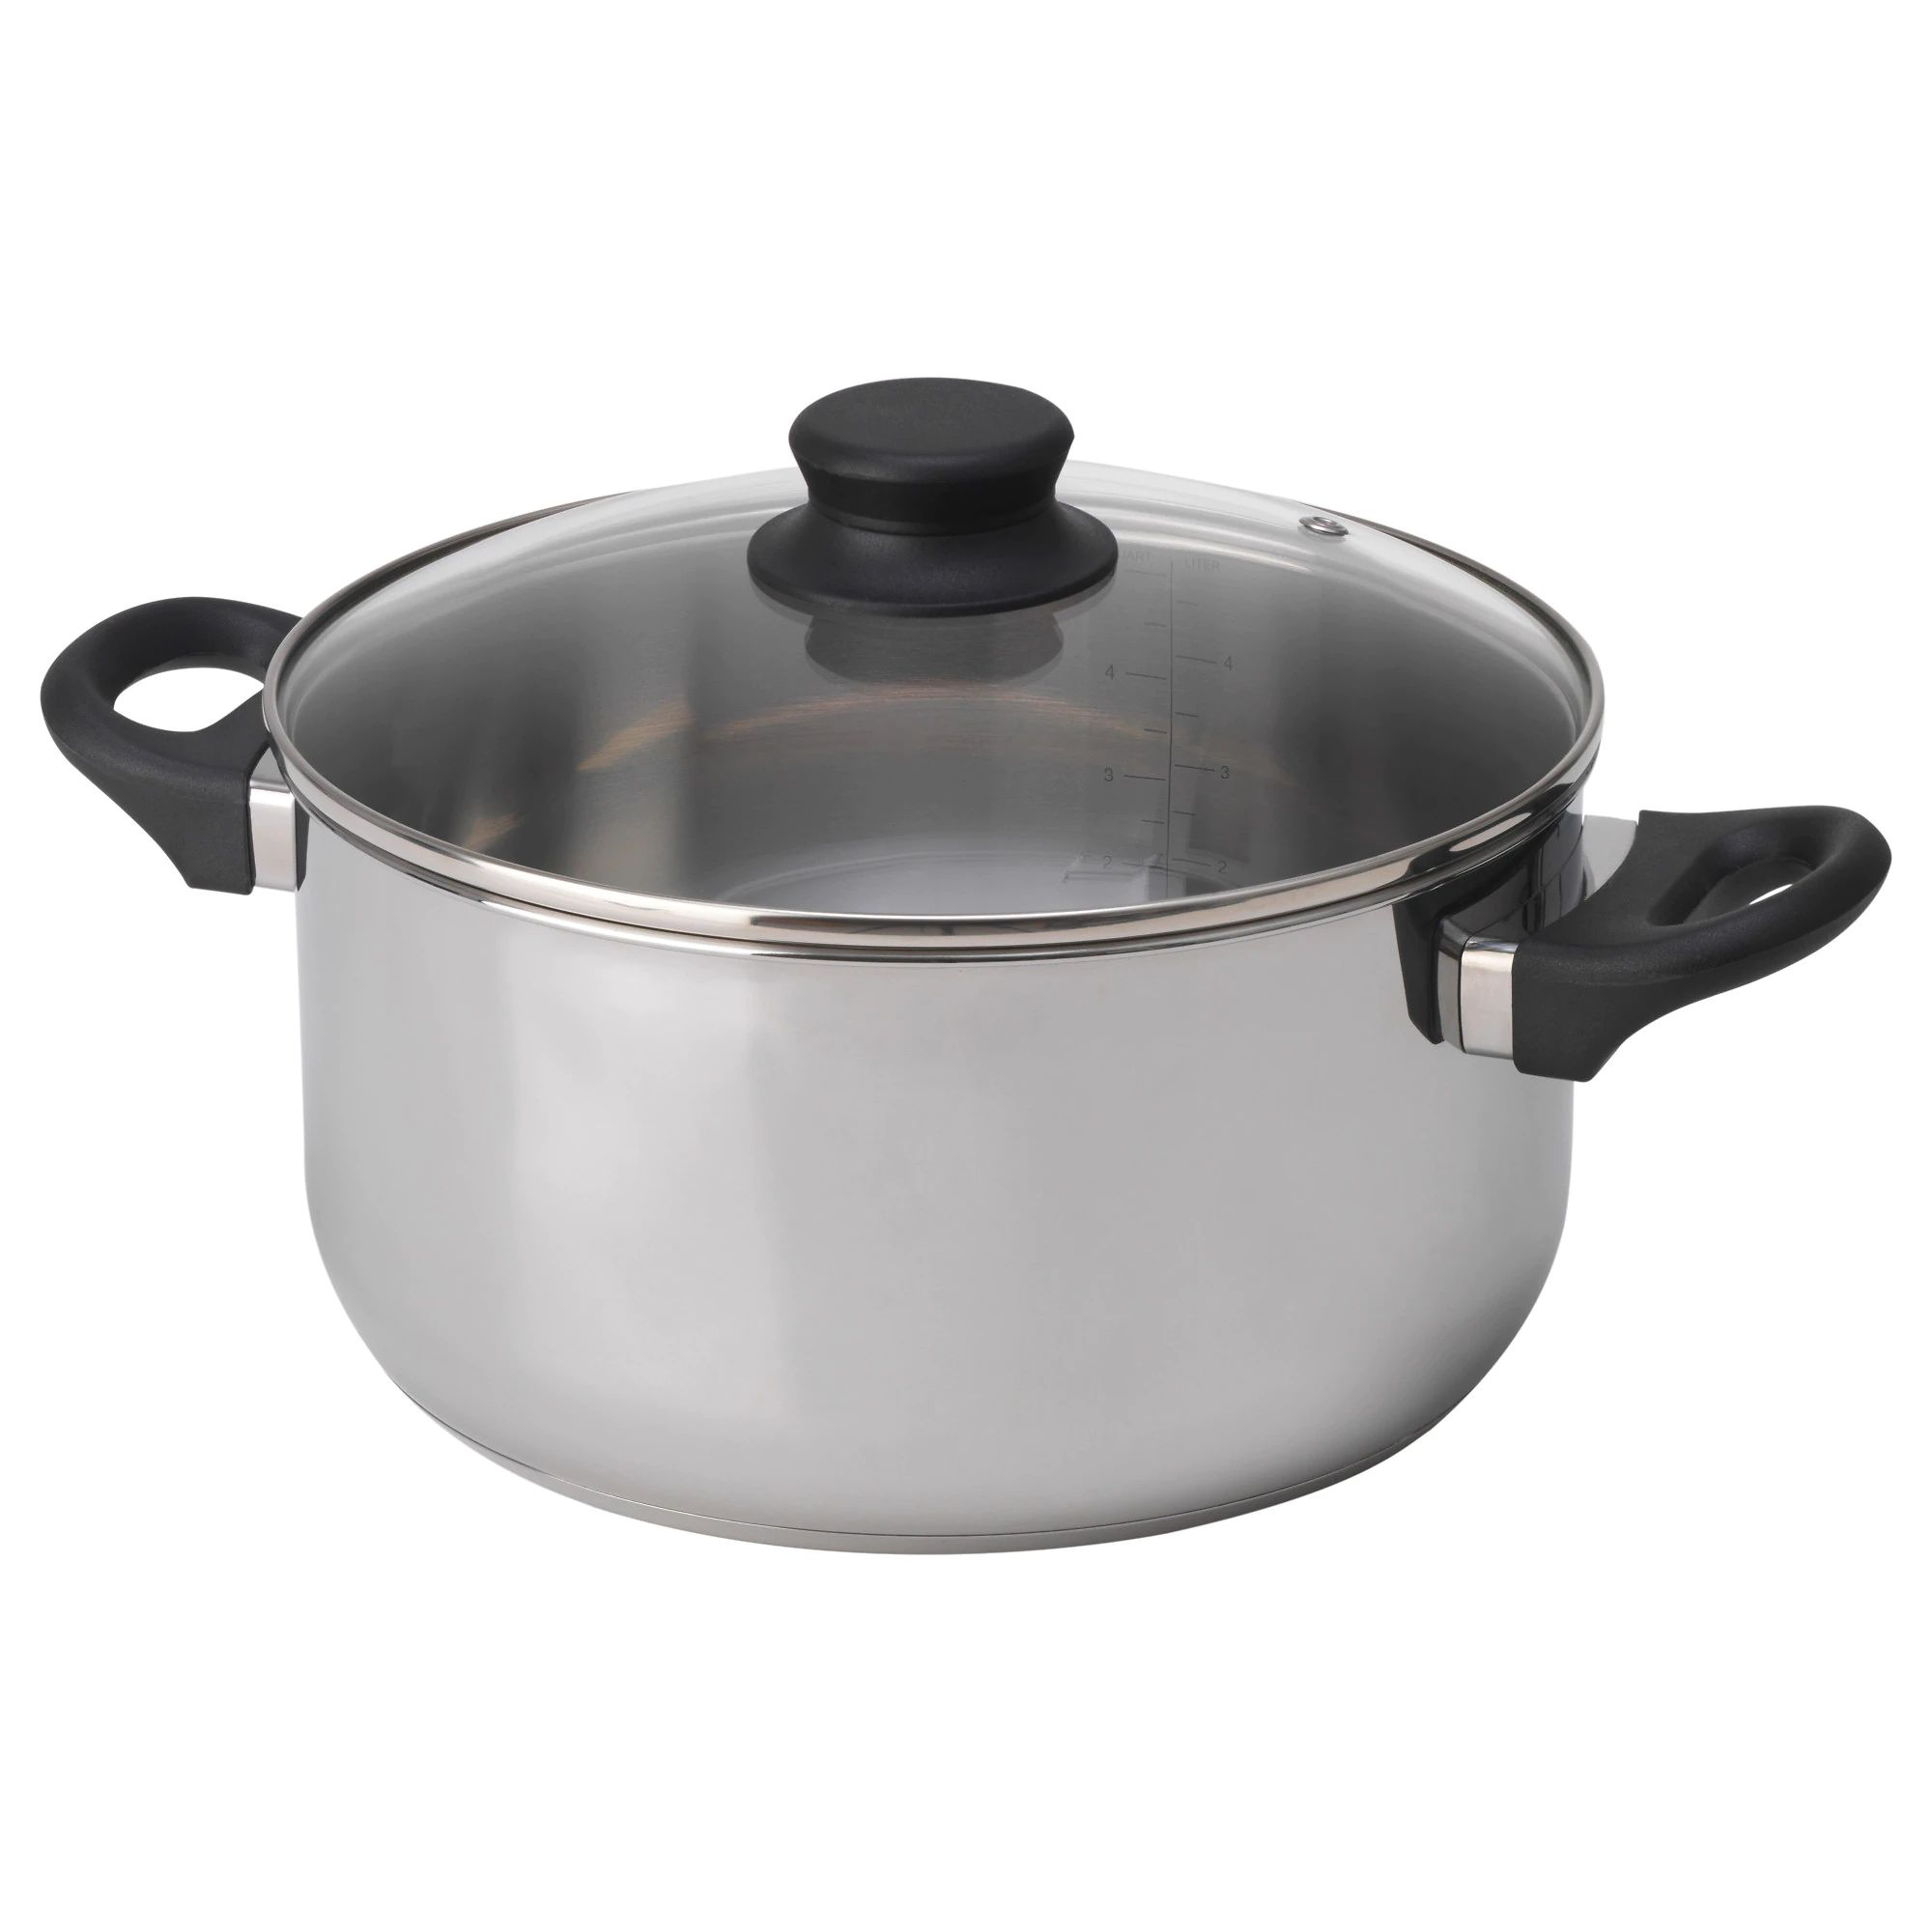 6 Qt Dutch Oven Stainless Steel Pot - Great for One Pot Meals